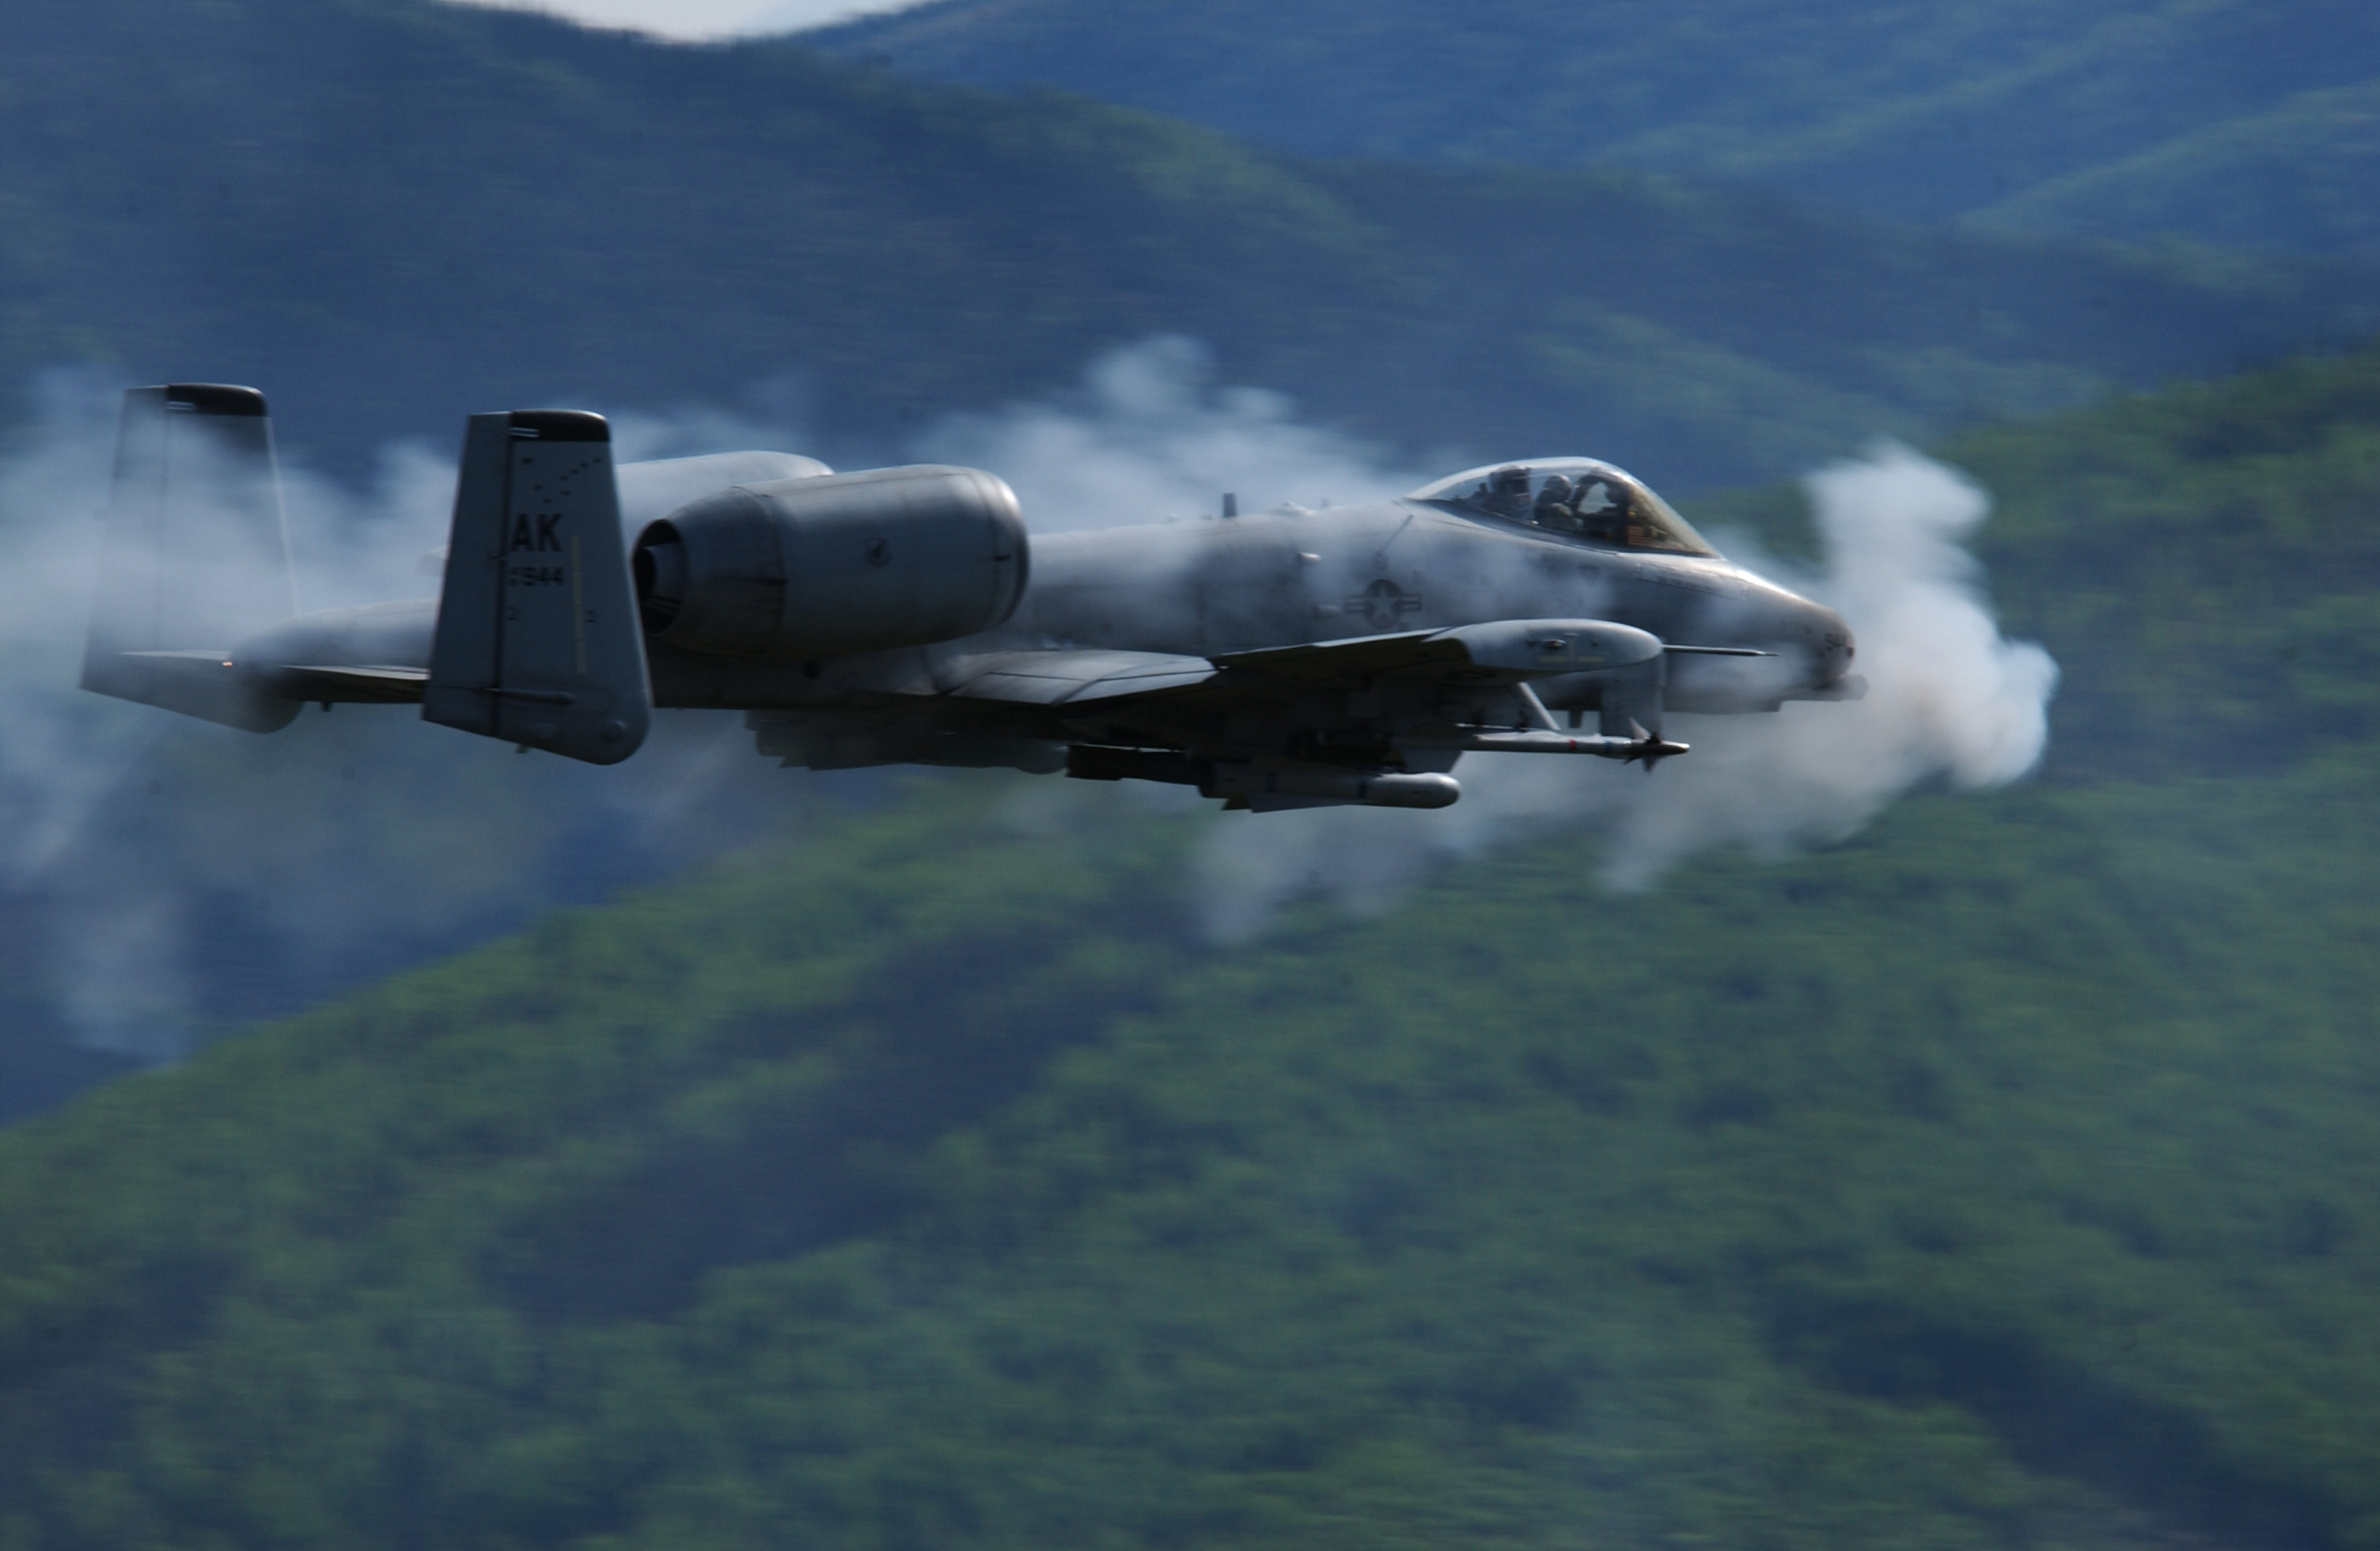 A U.S. Air Force A/OA-10 Thunderbolt II from the 355th Fighter Squadron is surrounded by a cloud of gun smoke as it fires a 30mm GAU-8 Avenger Gatling gun over the Pacific Alaska Range Complex in Alaska on May 29, 2007.  The seven-barrel Gatling gun can  be fired at a rate of 3,900 rounds per minute.  DoD photo by Airman 1st Class Jonathan Snyder, U.S. Air Force.  (Released)